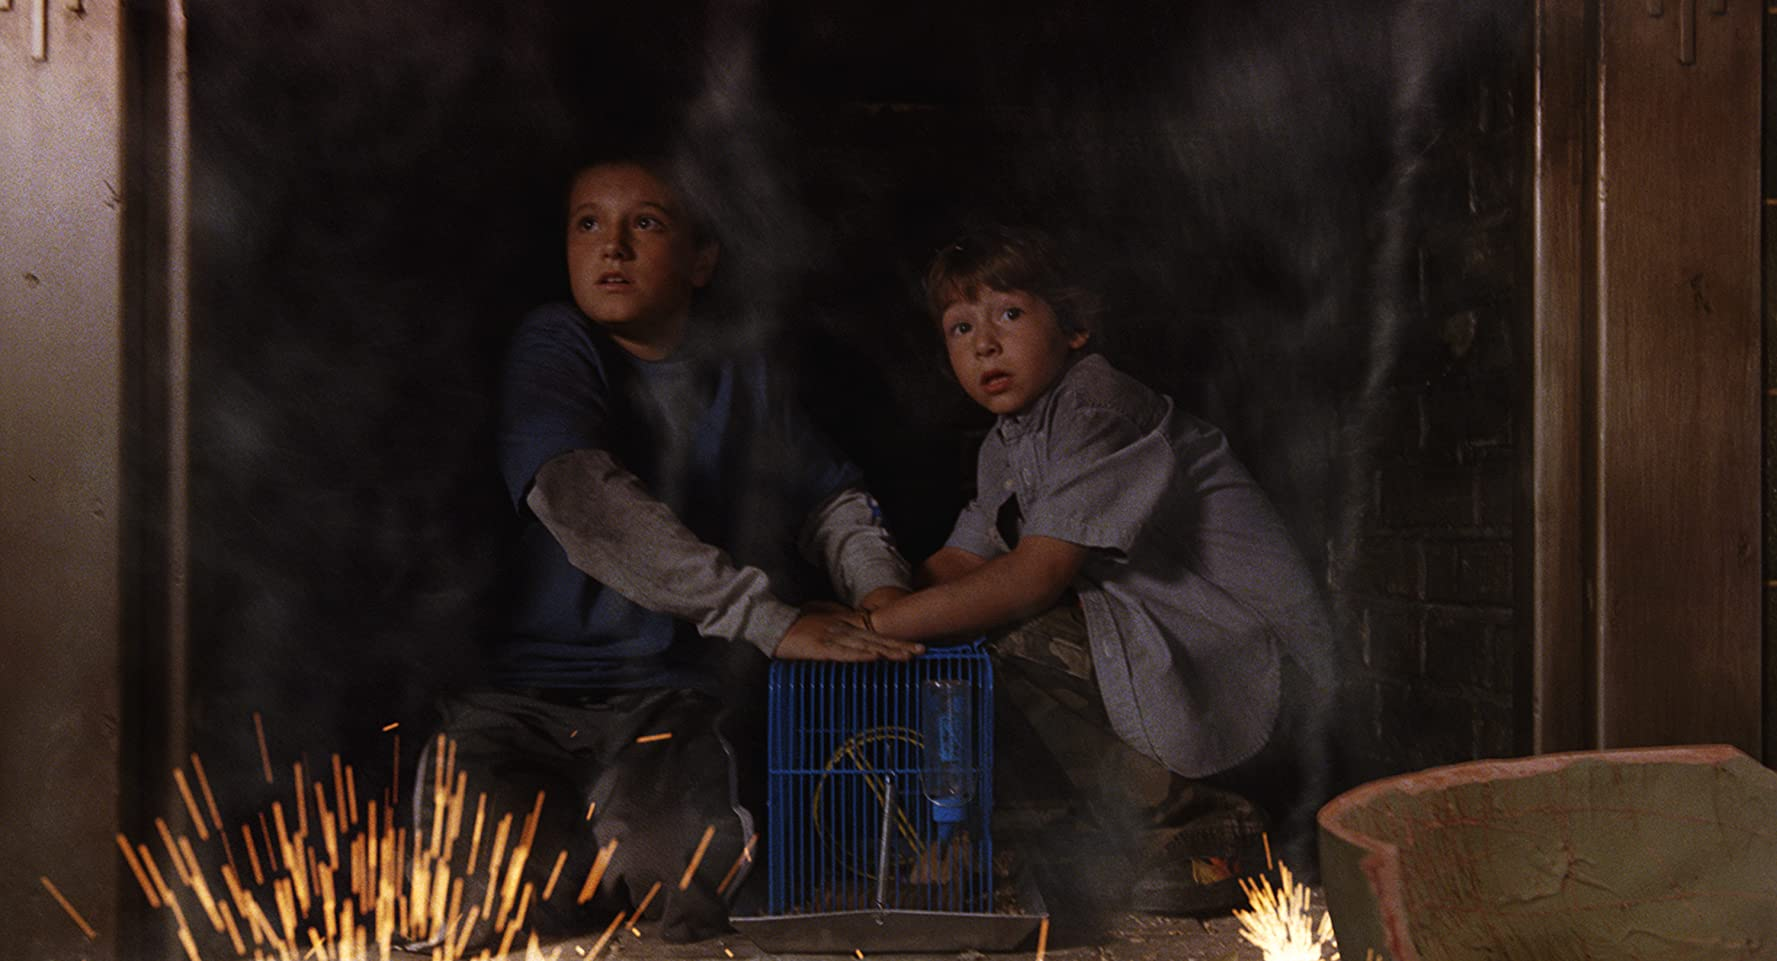 Josh Hutcherson and Jonah Bobo in Zathura: A Space Adventure (2005)